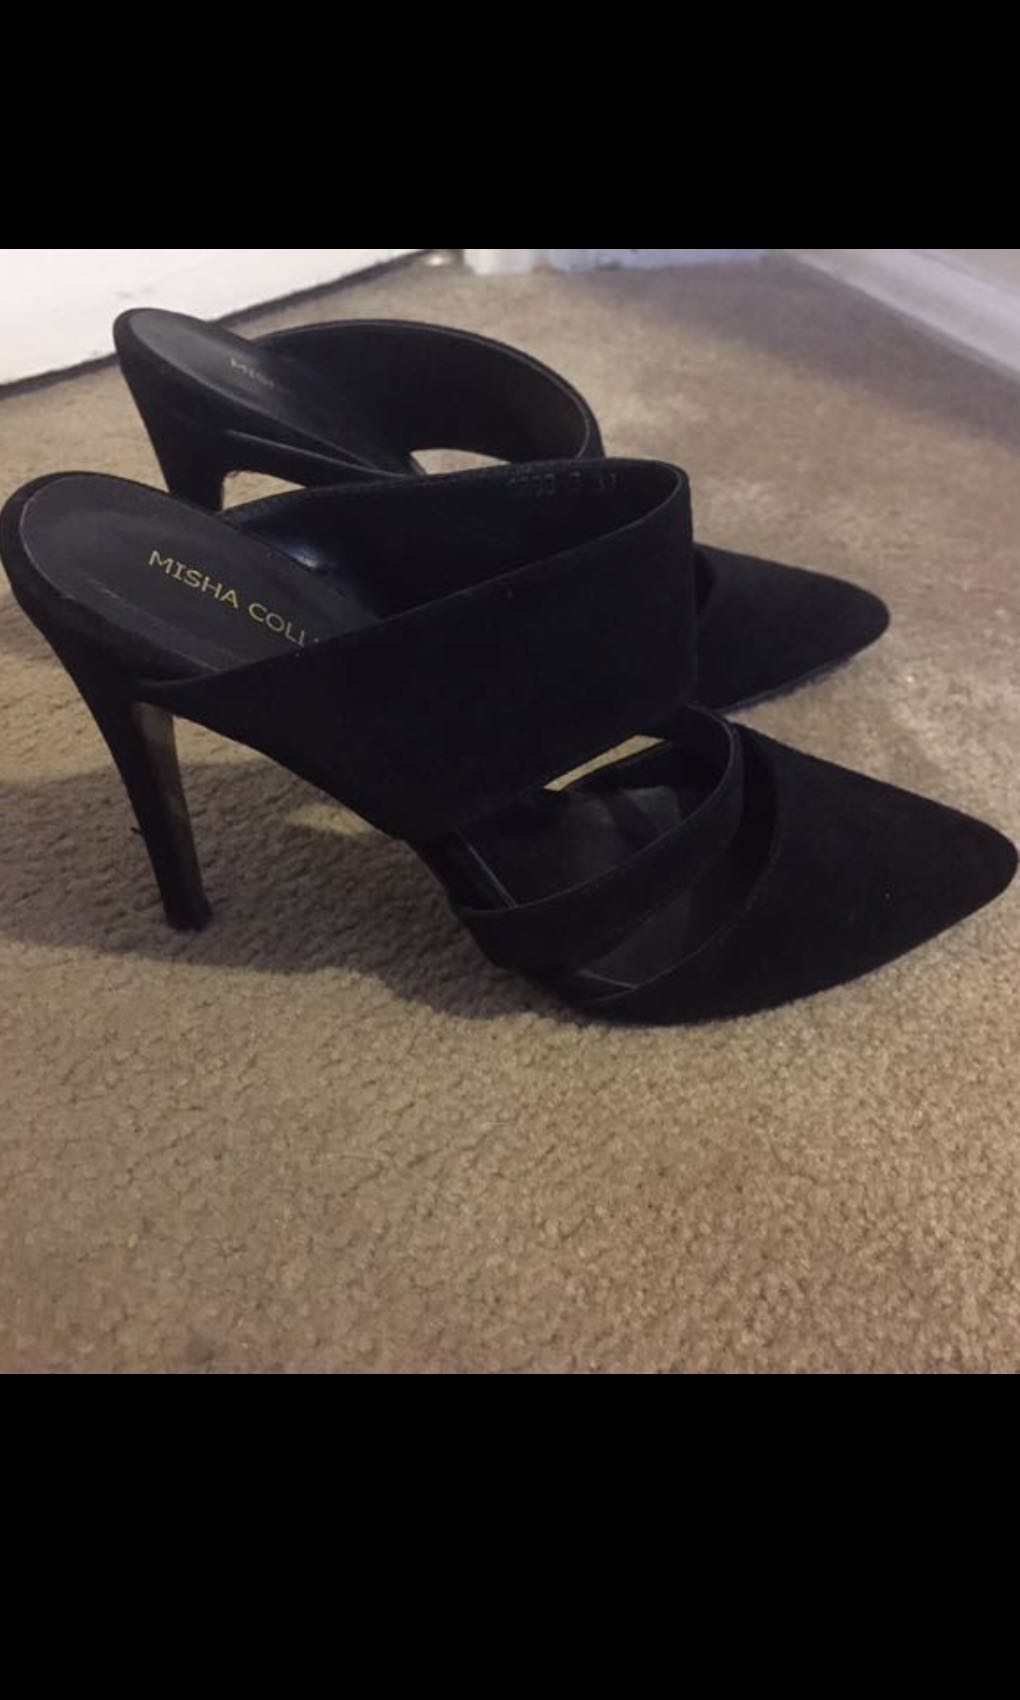 Misha Collection brand new size 39